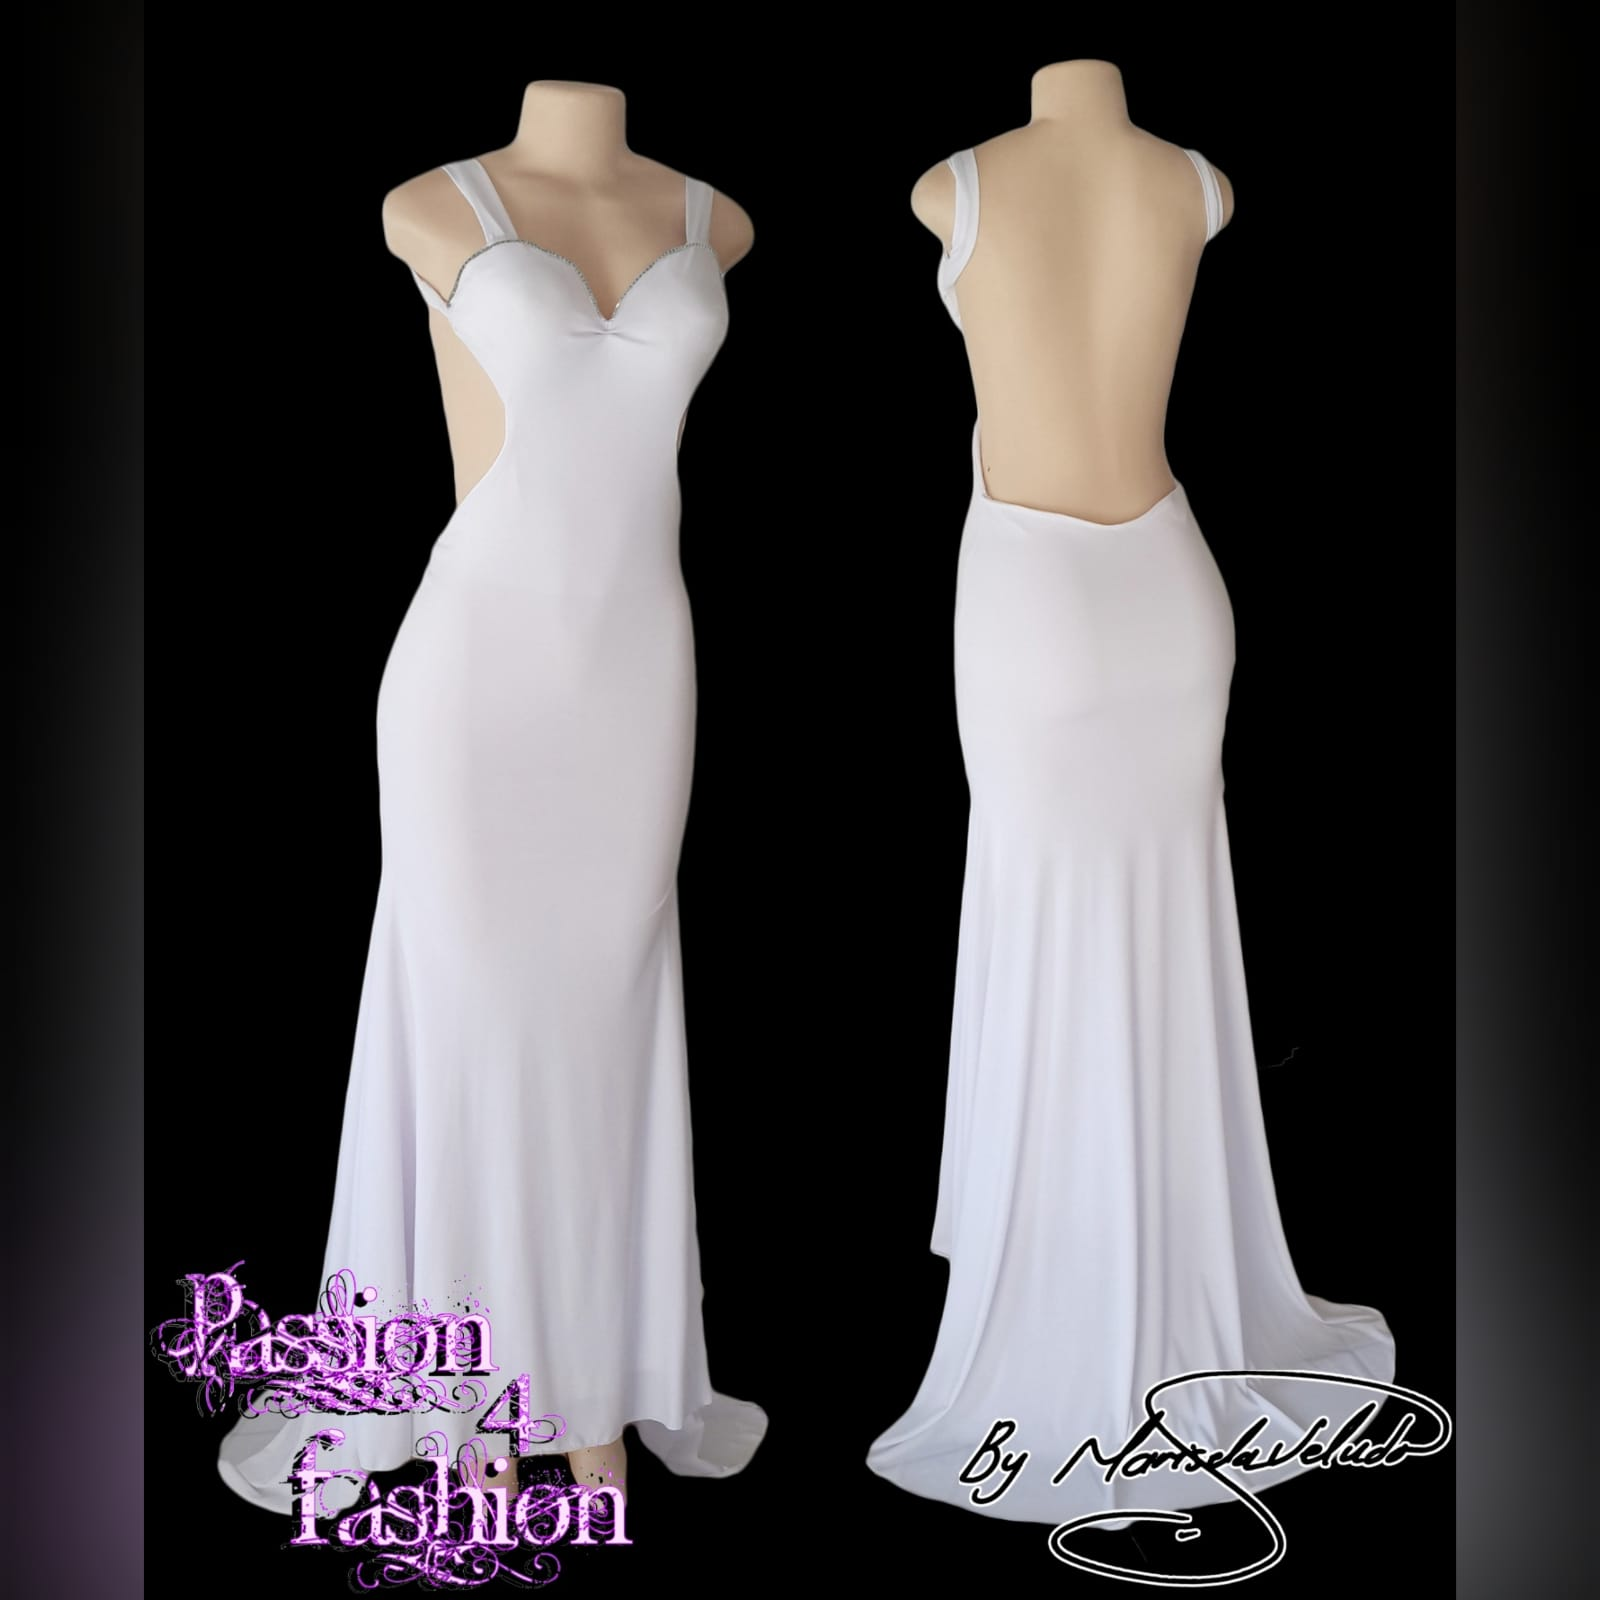 White sexy long evening dress with a low open back 3 white sexy long evening dress with a low open back, shoulder straps, sweetheart neckline with a diamante finish and a train